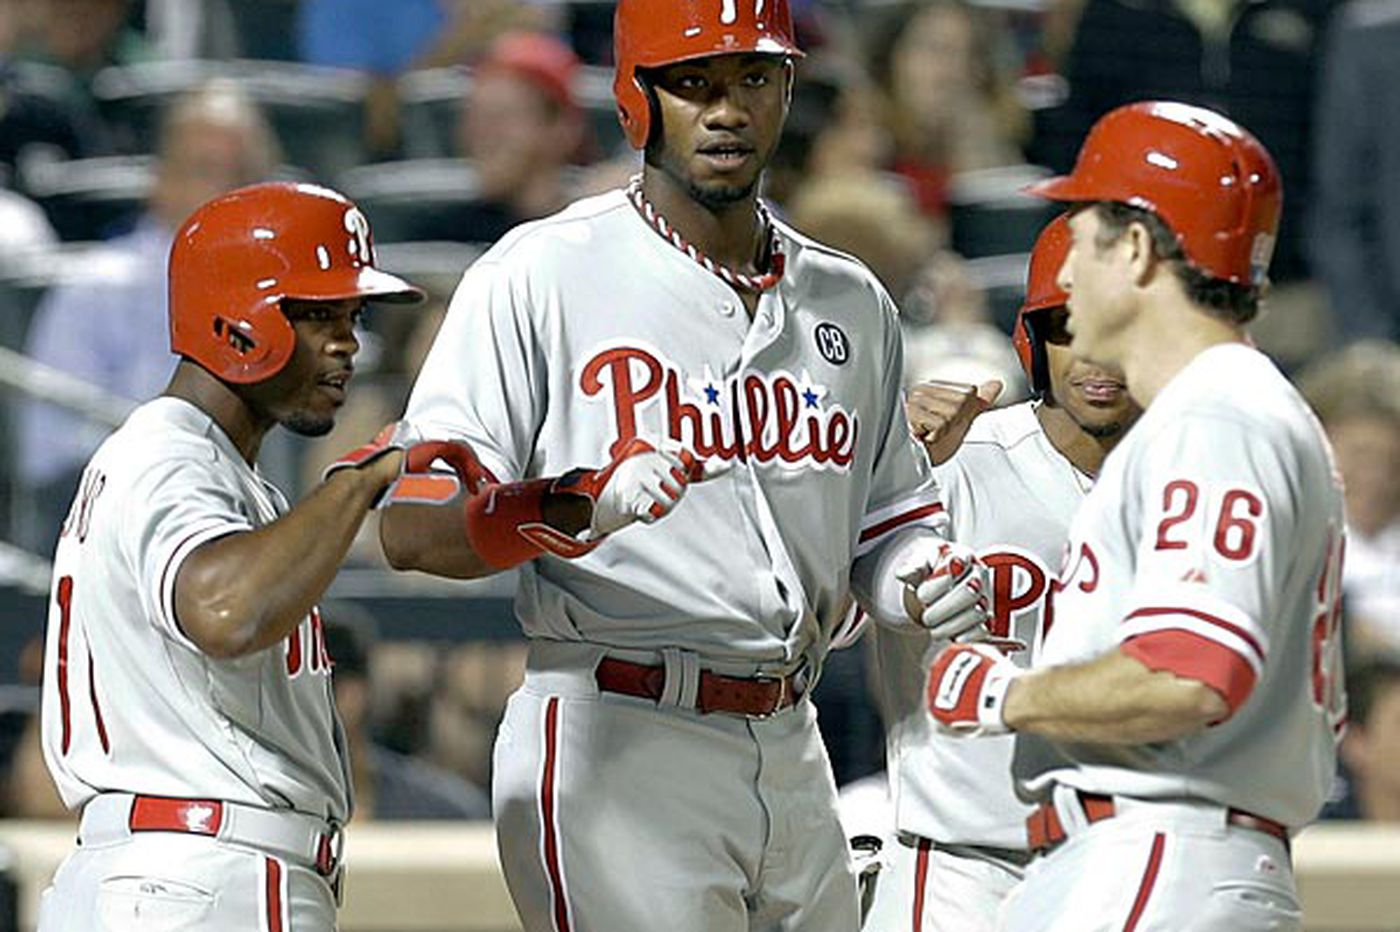 For Phillies' players, trade deadline not a big deal